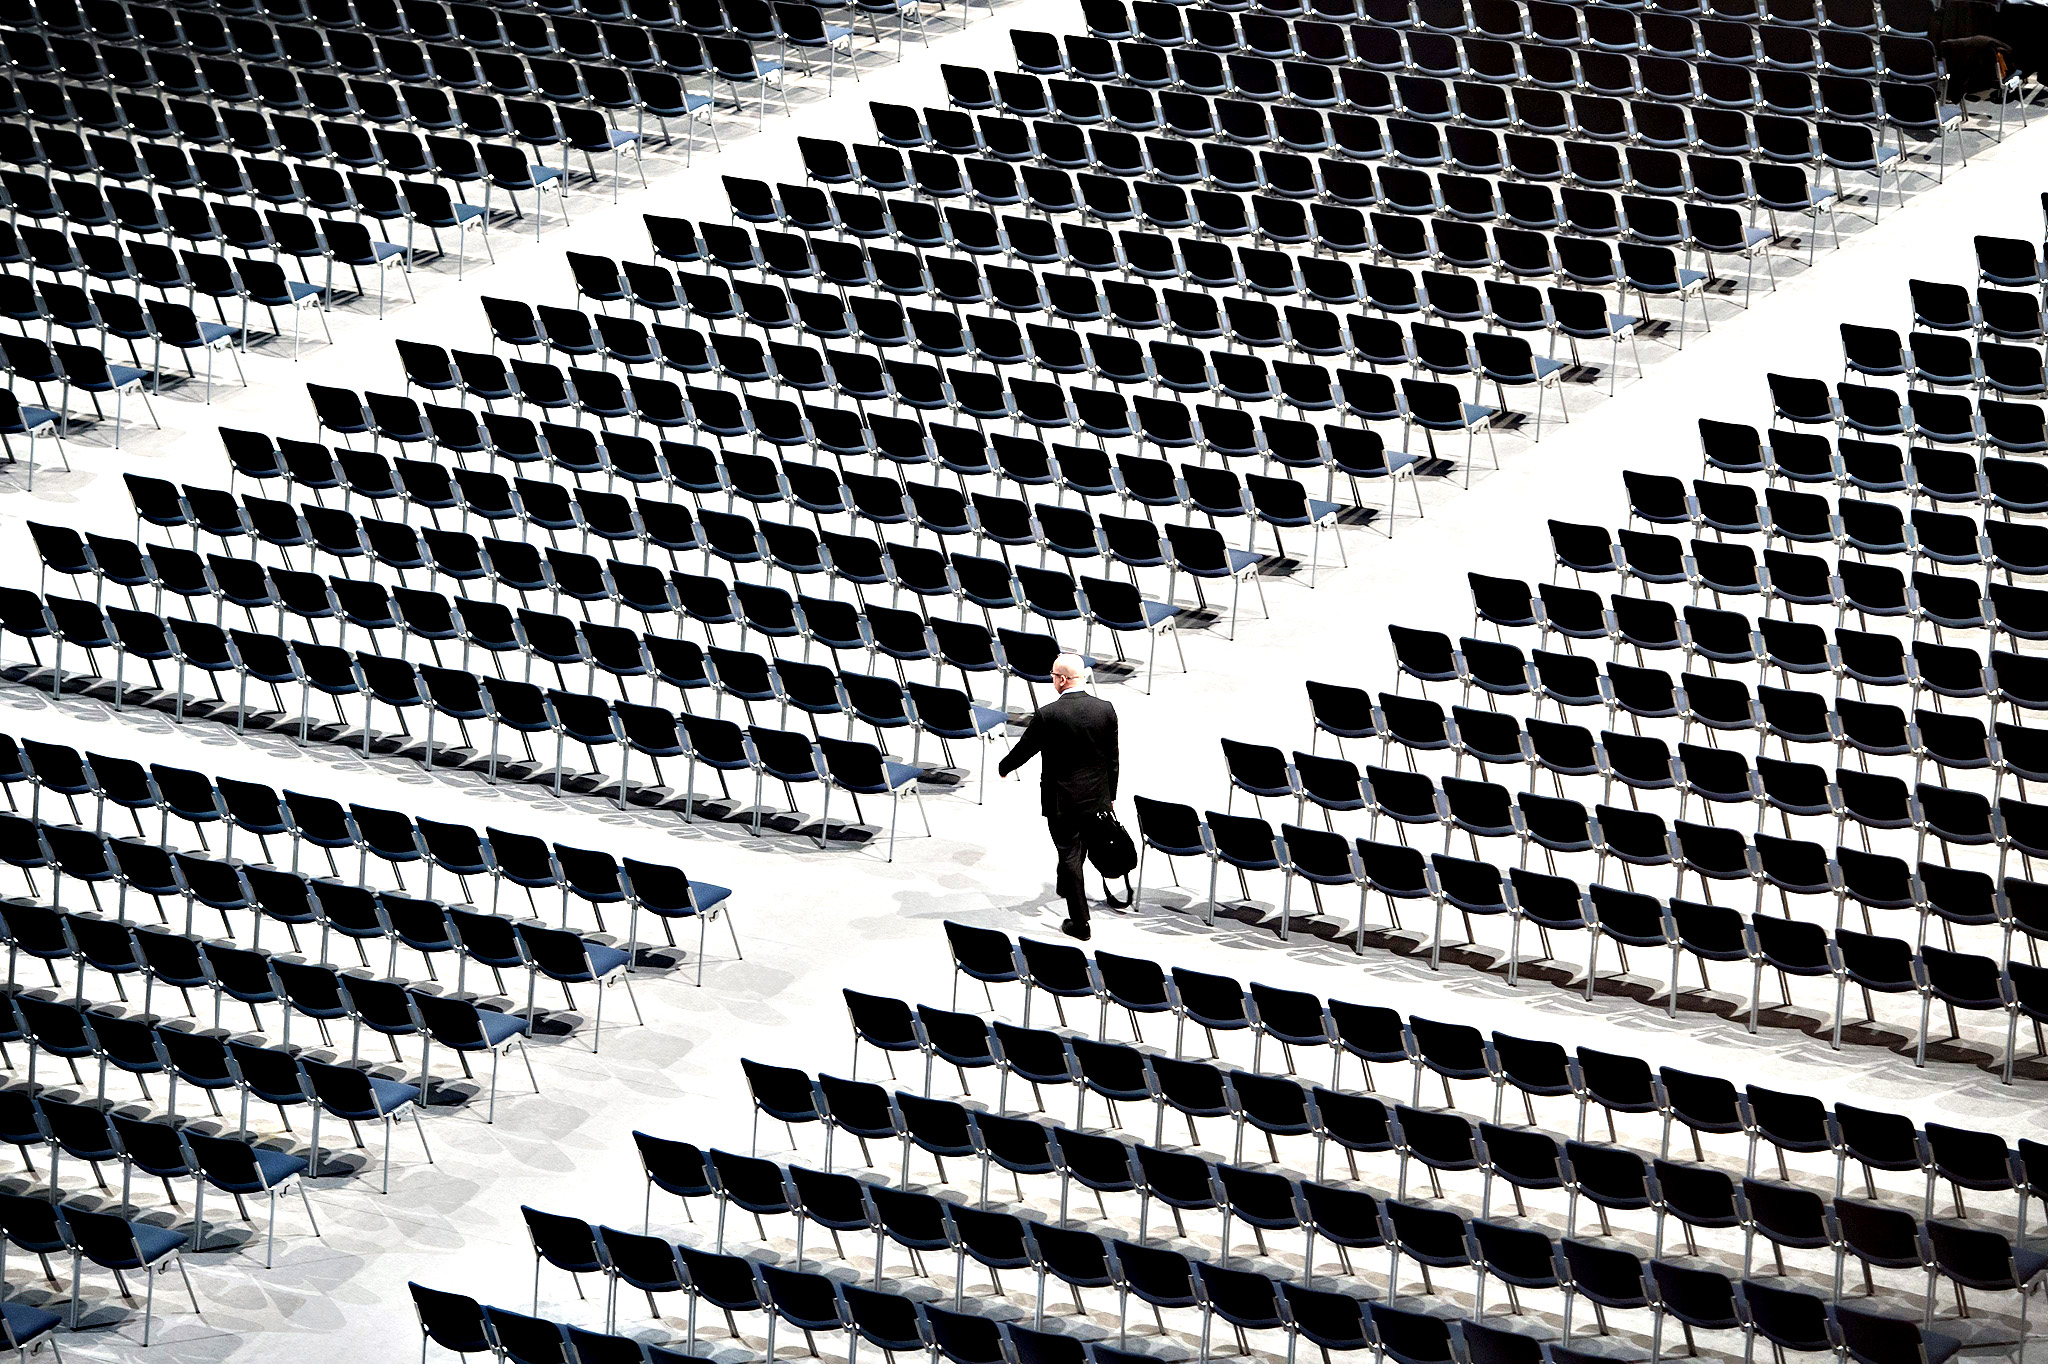 A man walks through the still empty rows of chairs before the beginning of the annual general meeting of Siemens AG in Munich, Germany, 27 January 2015.